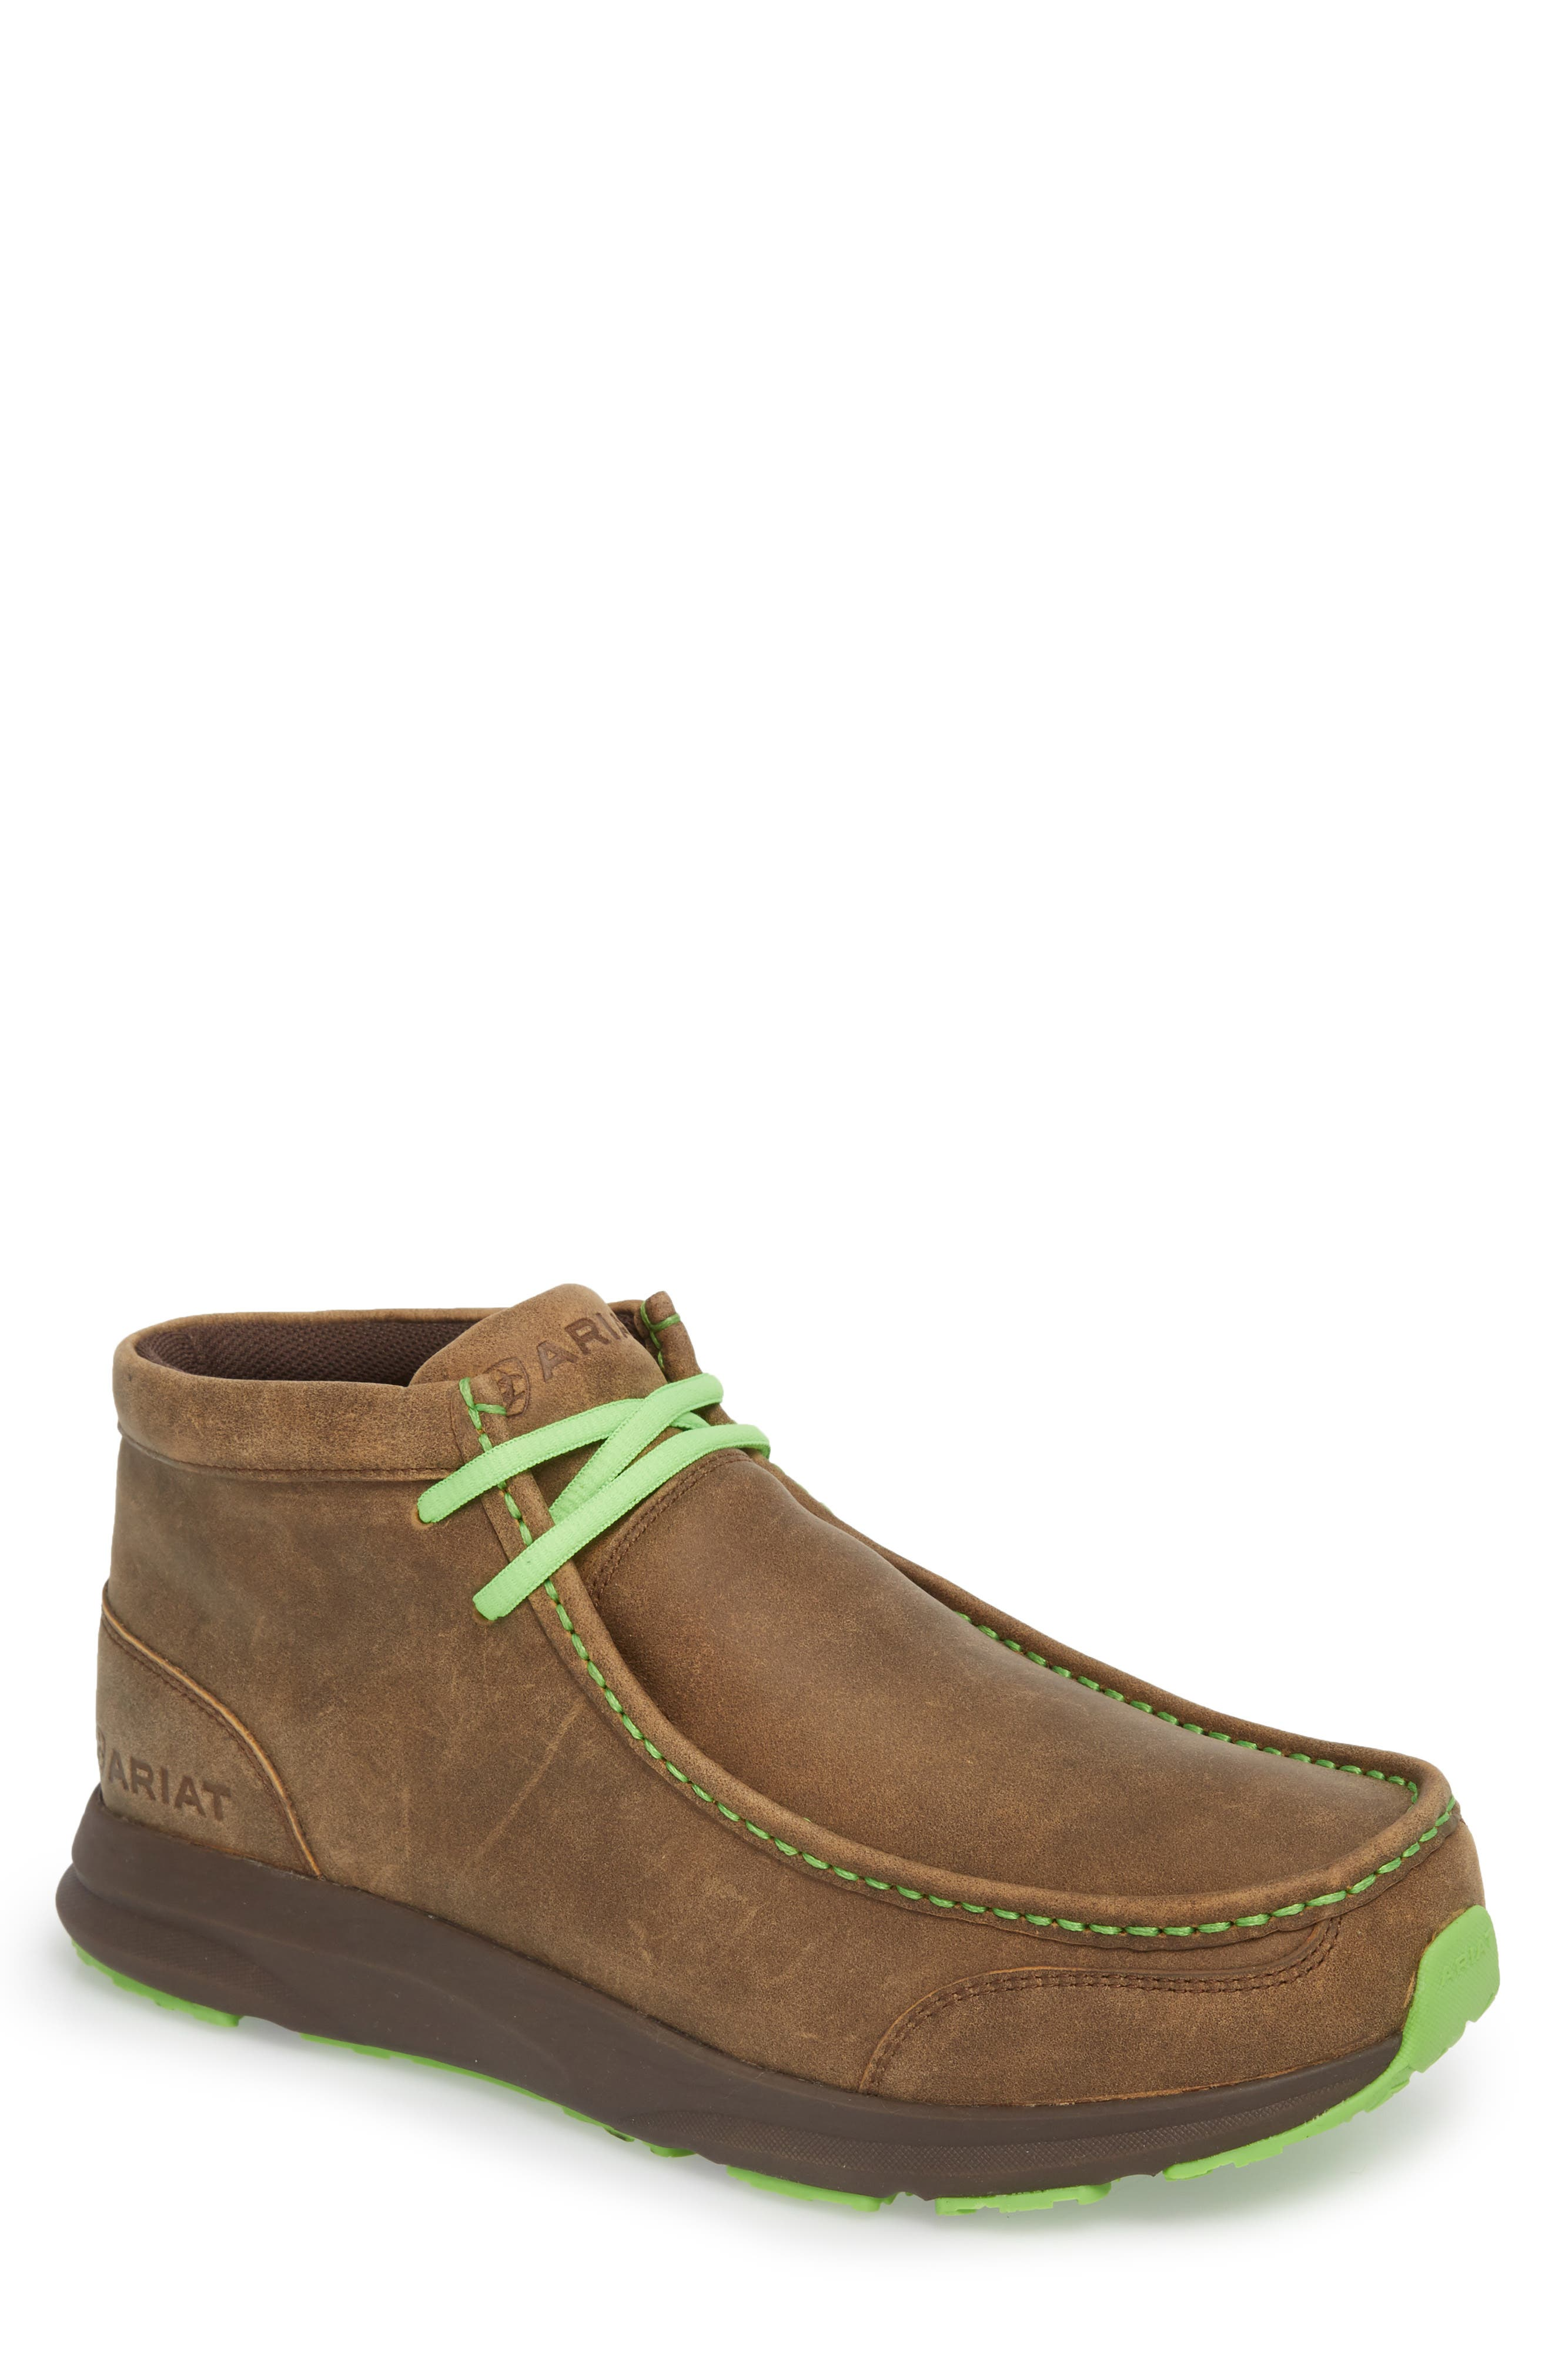 Spitfire Chukka Boot,                         Main,                         color, Brown Bomber Leather